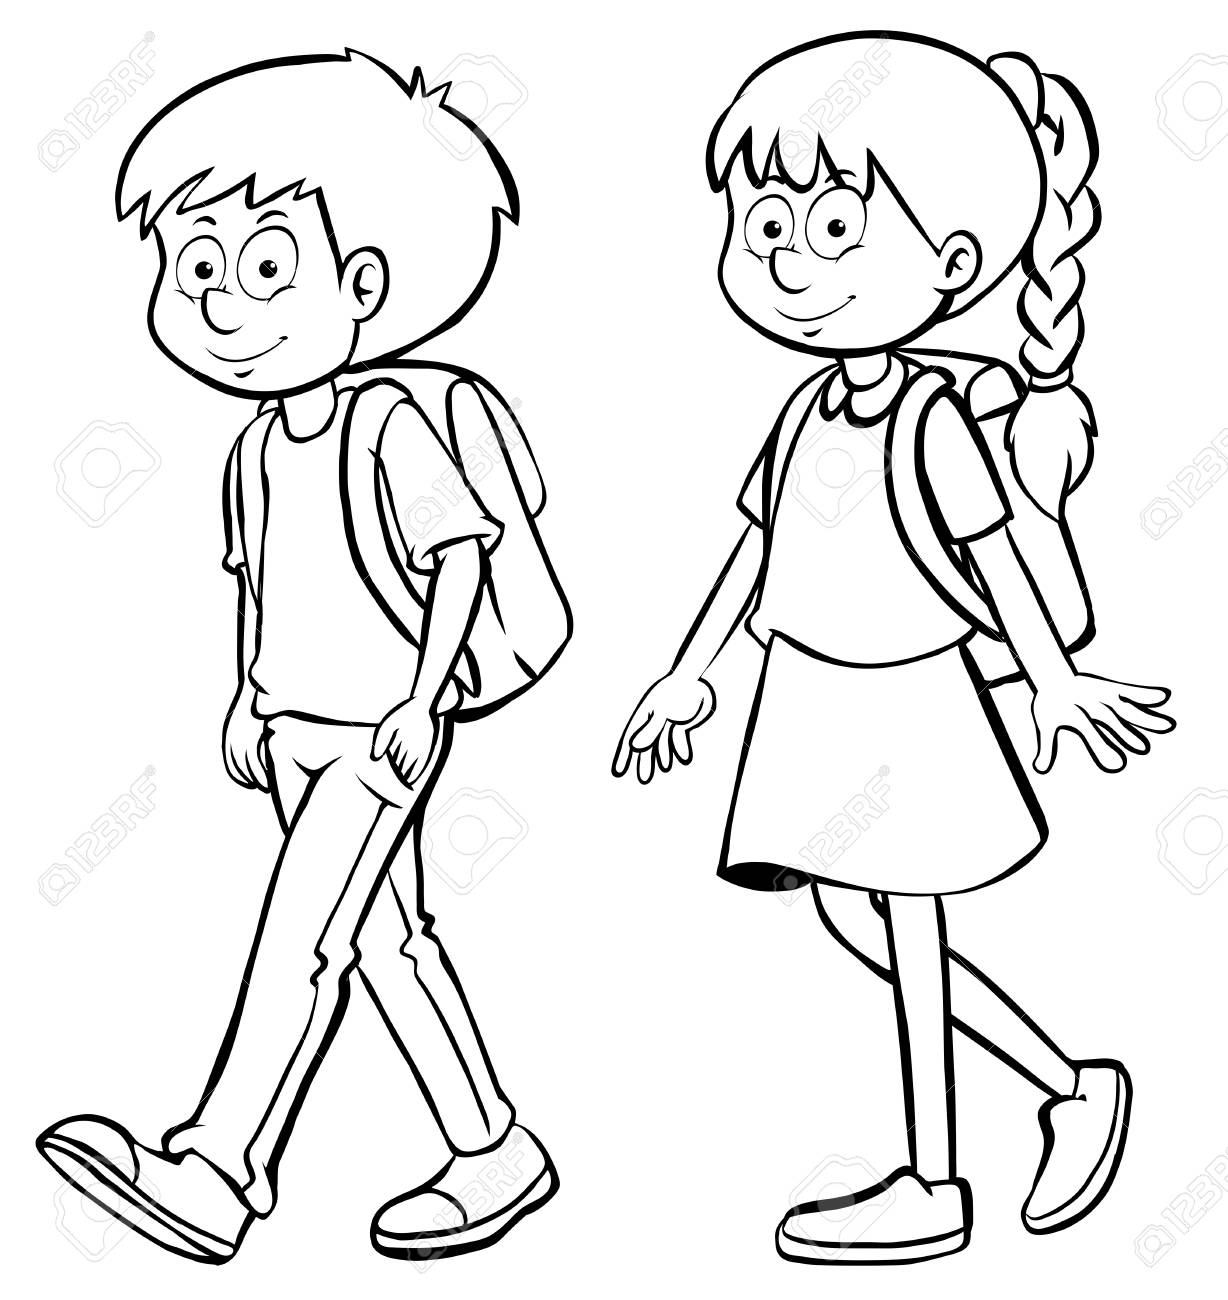 Human outline for boy and girl illustration.